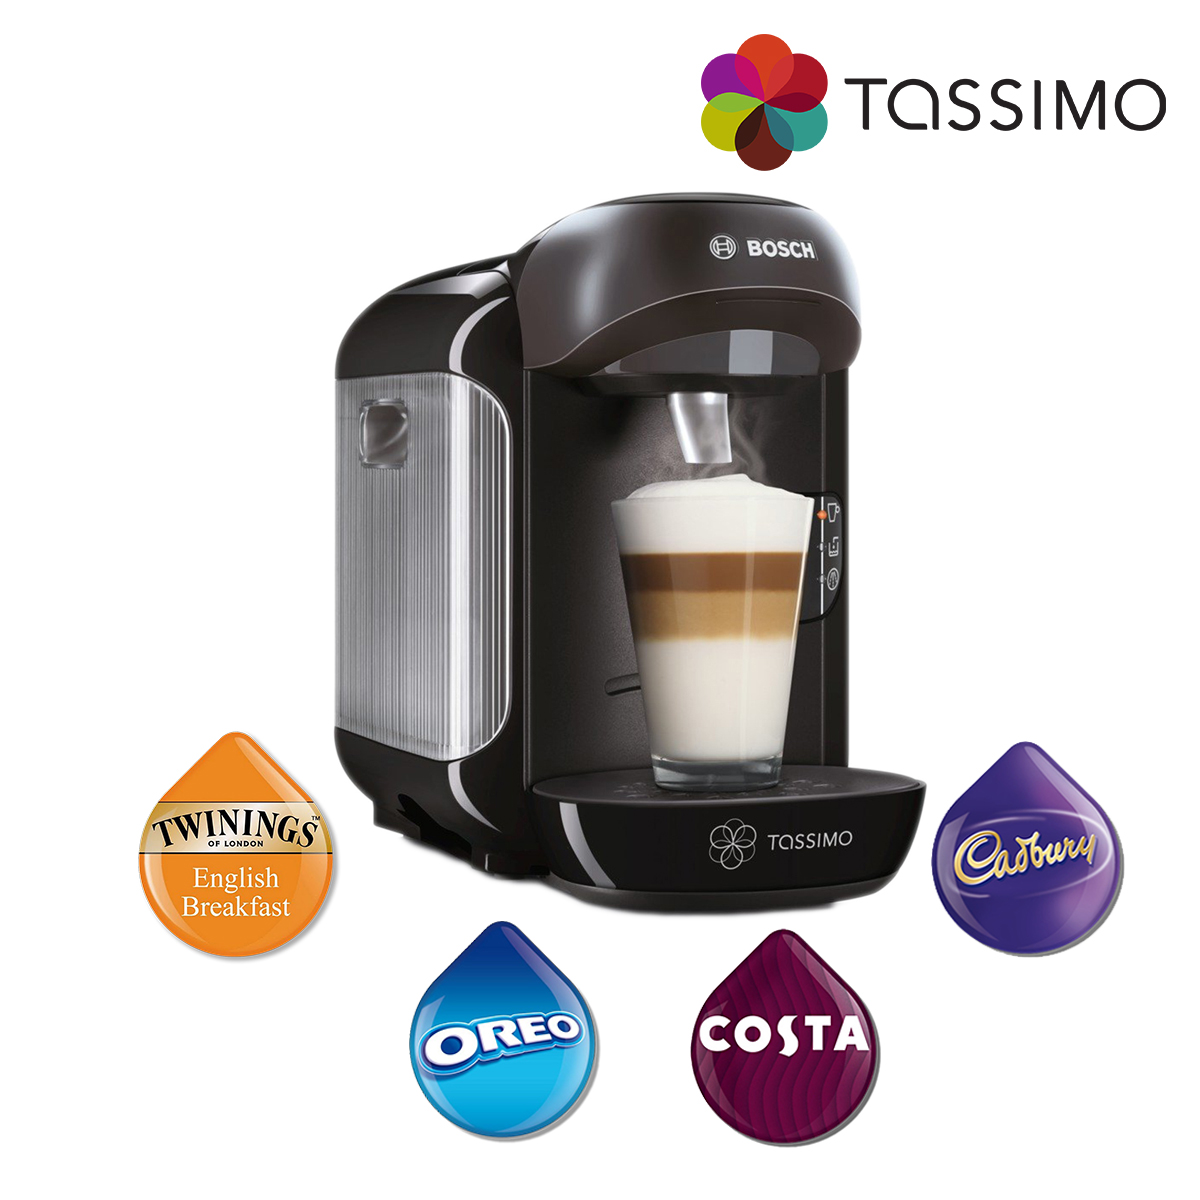 bosch tassimo vivy tas1252gb coffee pod machine hot drink maker 0 7l 1300w 4242002830759 ebay. Black Bedroom Furniture Sets. Home Design Ideas